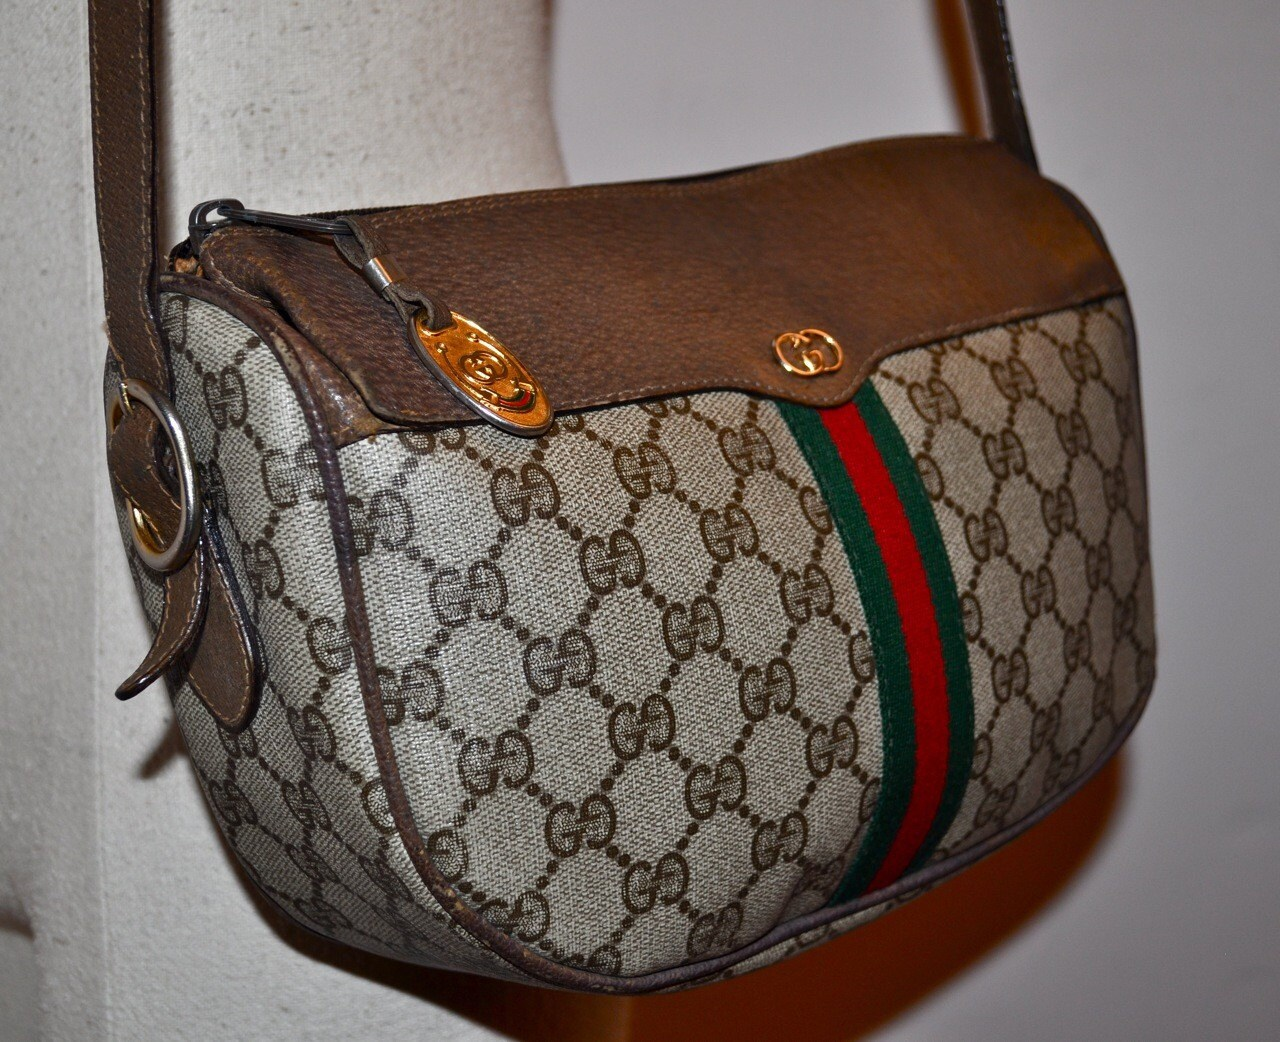 vintage 80s gucci handbag brown with red and green by louise49